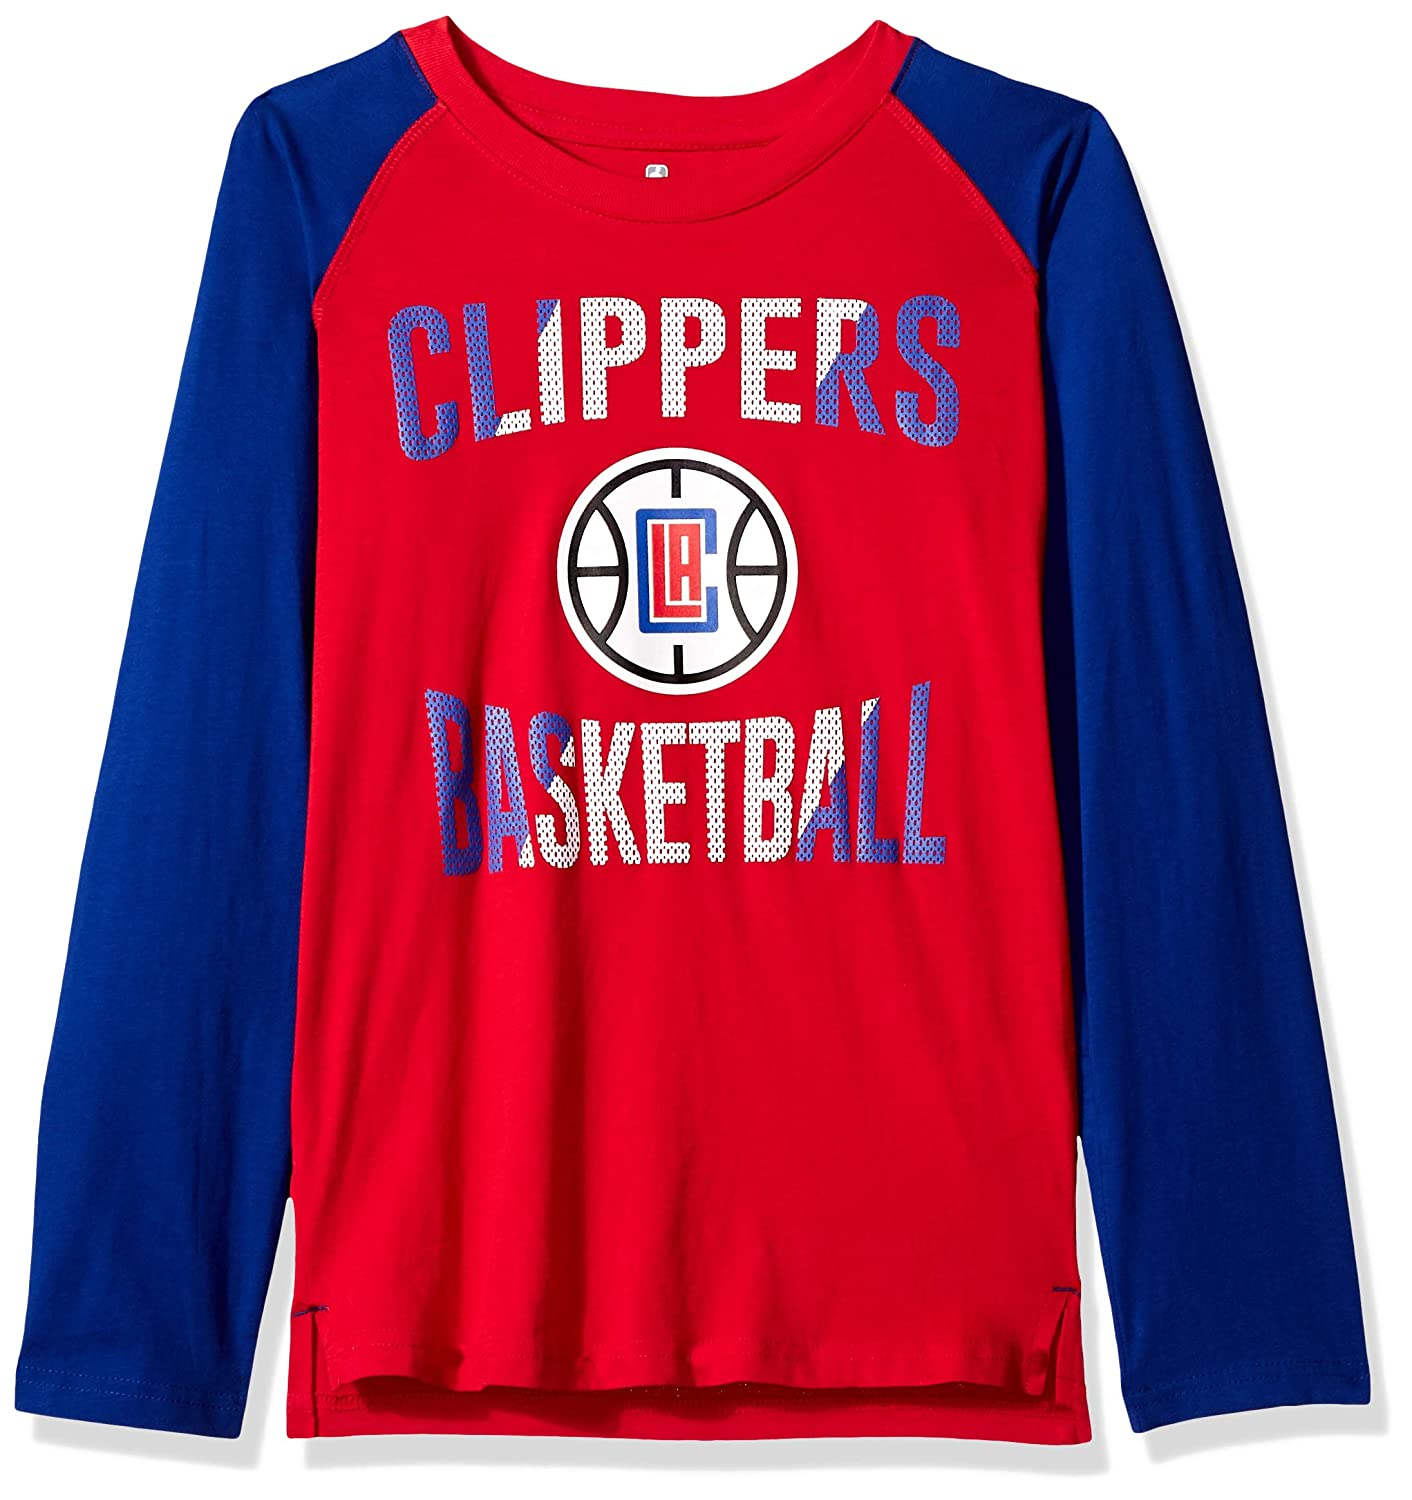 Youth Small Red 8 NBA by Outerstuff NBA Youth Boys Los Angeles Clippers Free Throw Long Sleeve Fashion Tee